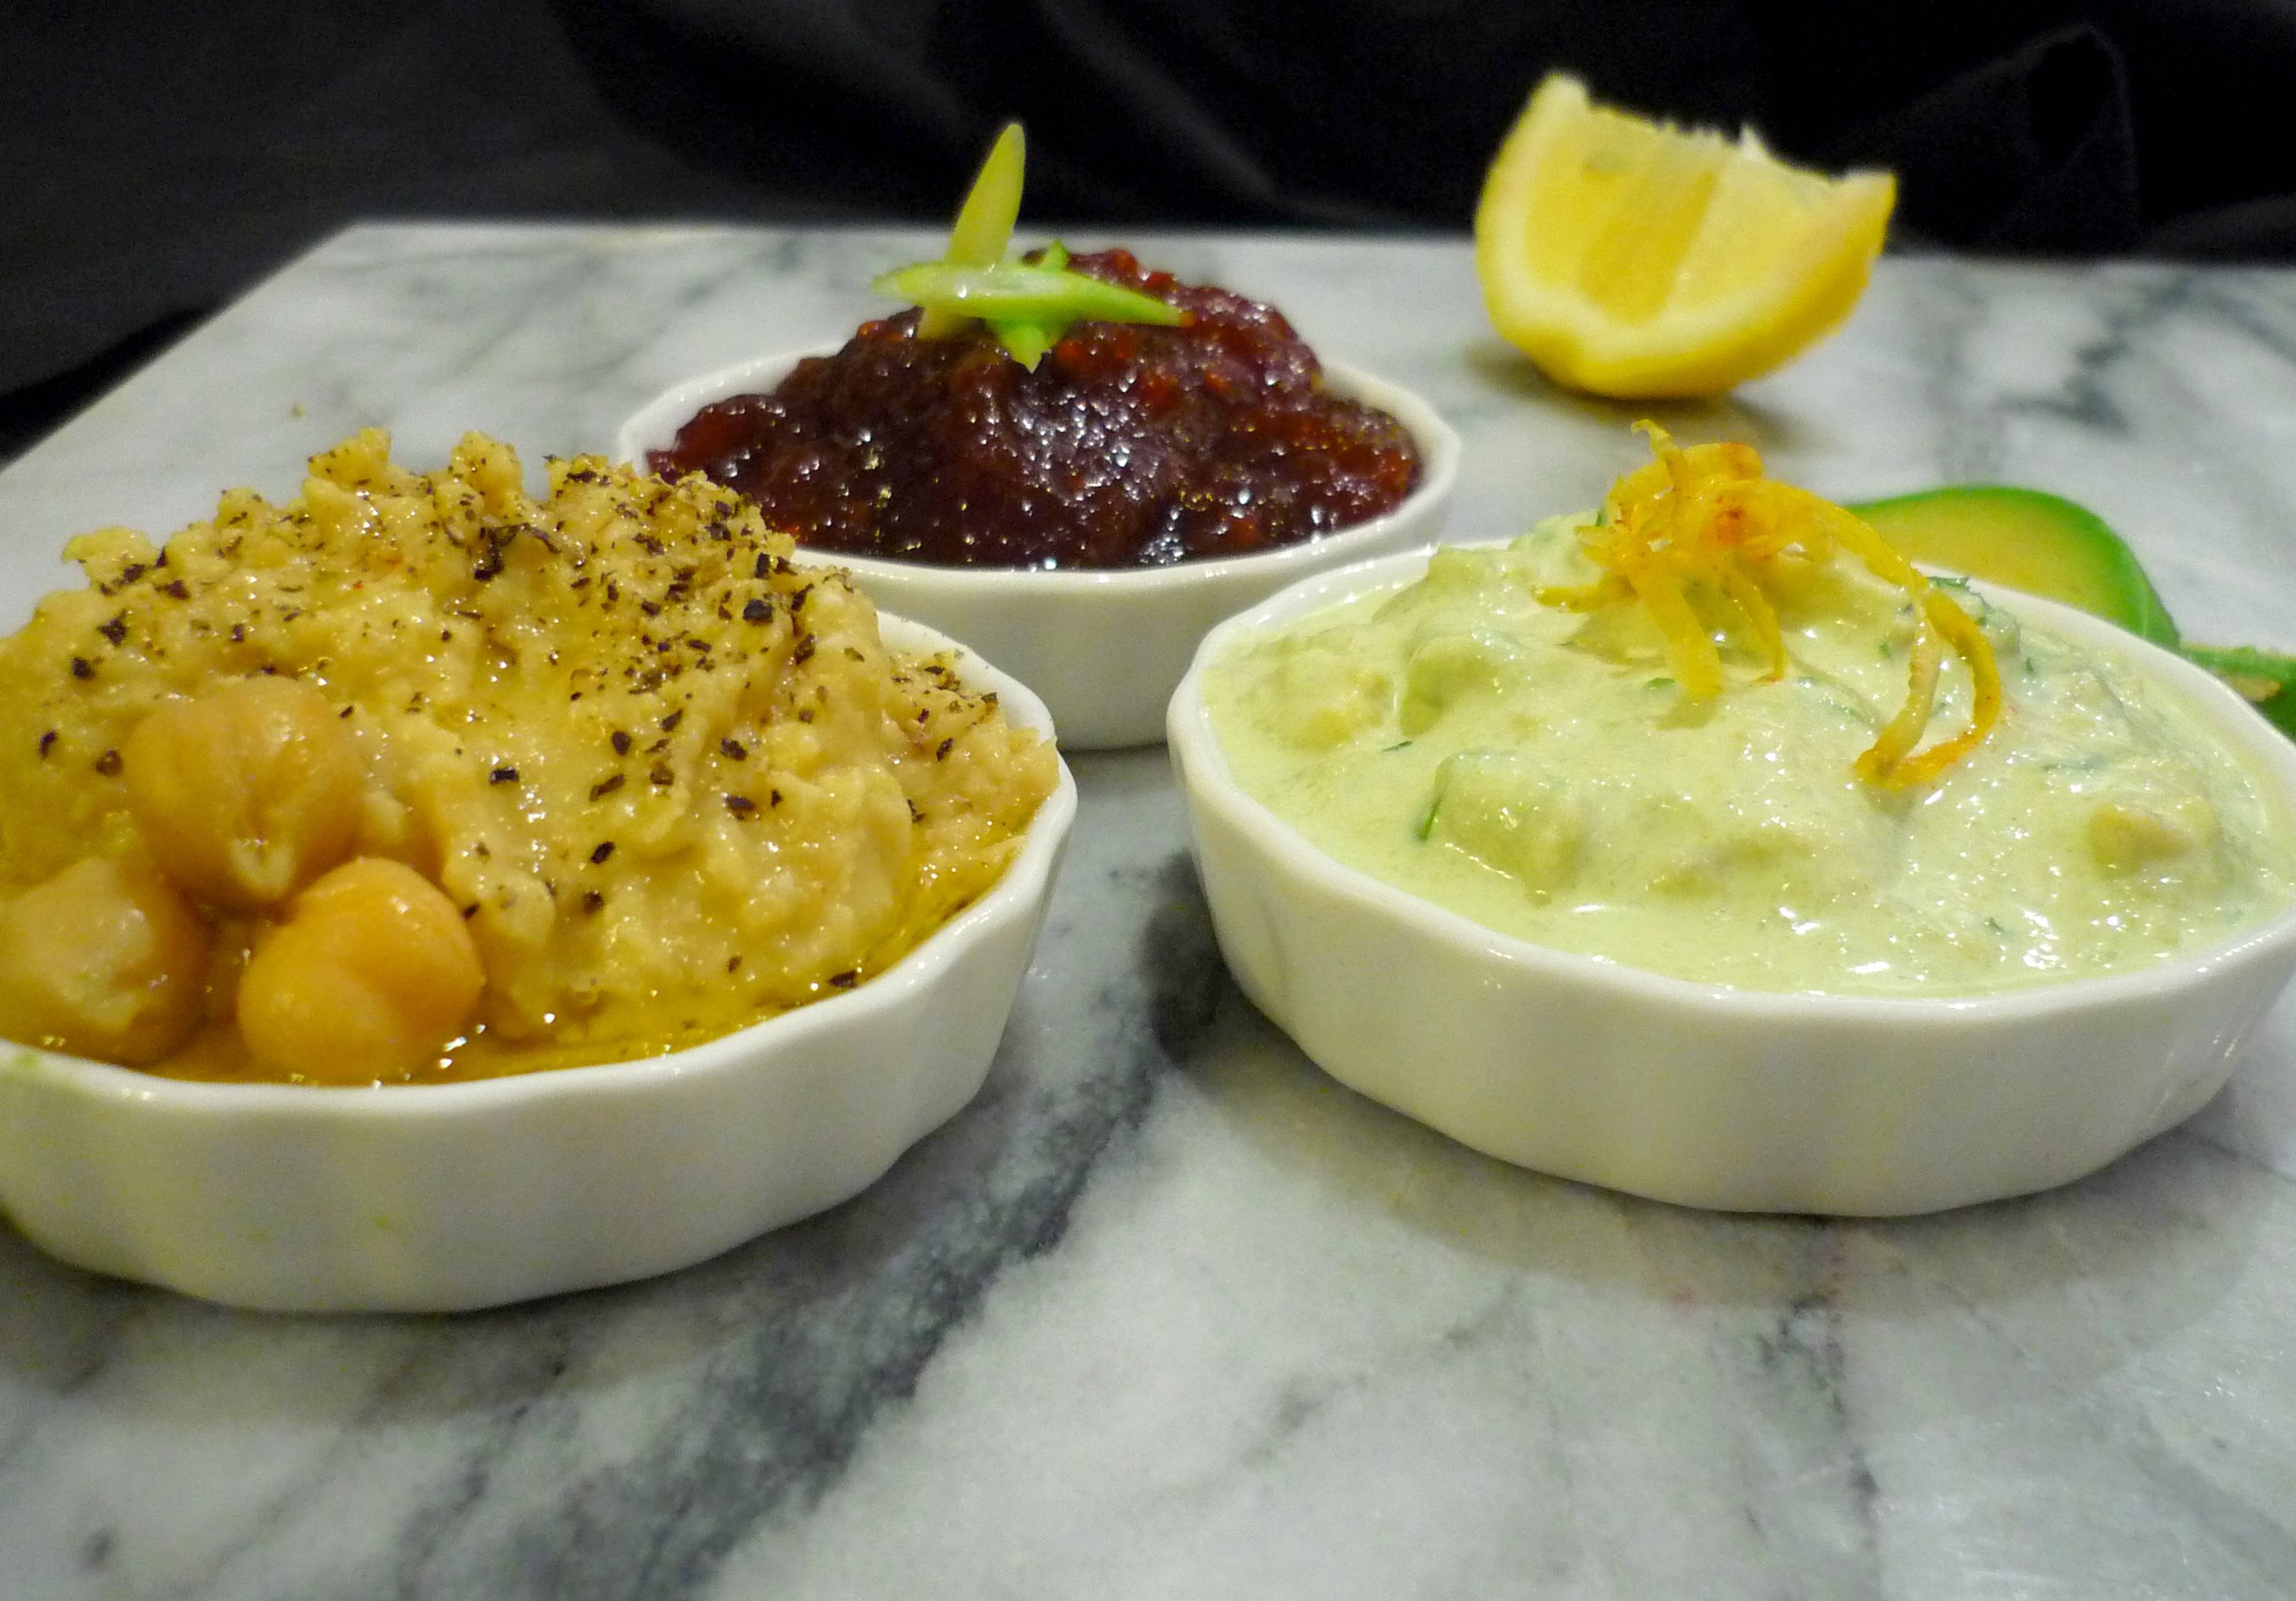 Trio of Dips - Avocado, Hummus and Beetroot Relish